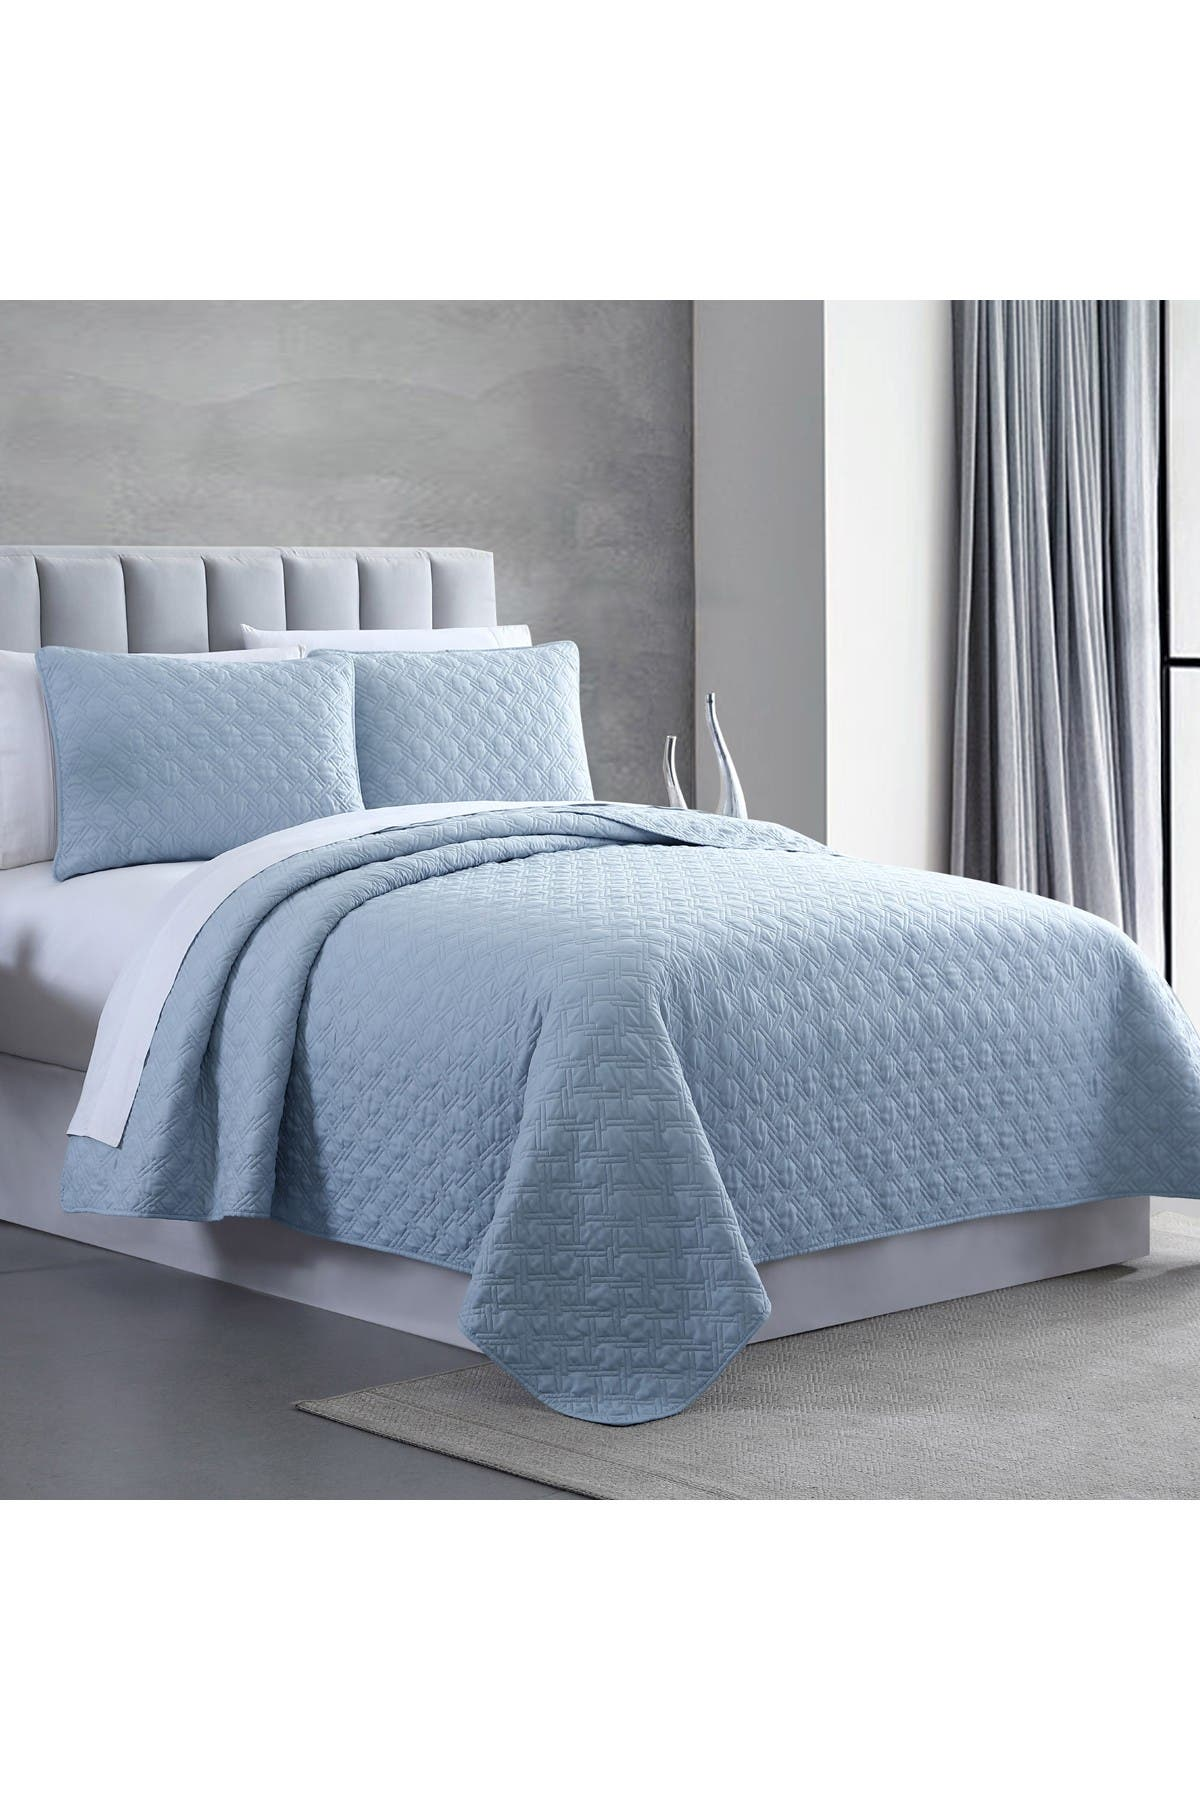 Image of Modern Threads Queen Enzyme Washed Diamond Link Quilted Coverlet 3-Piece Set - Blue